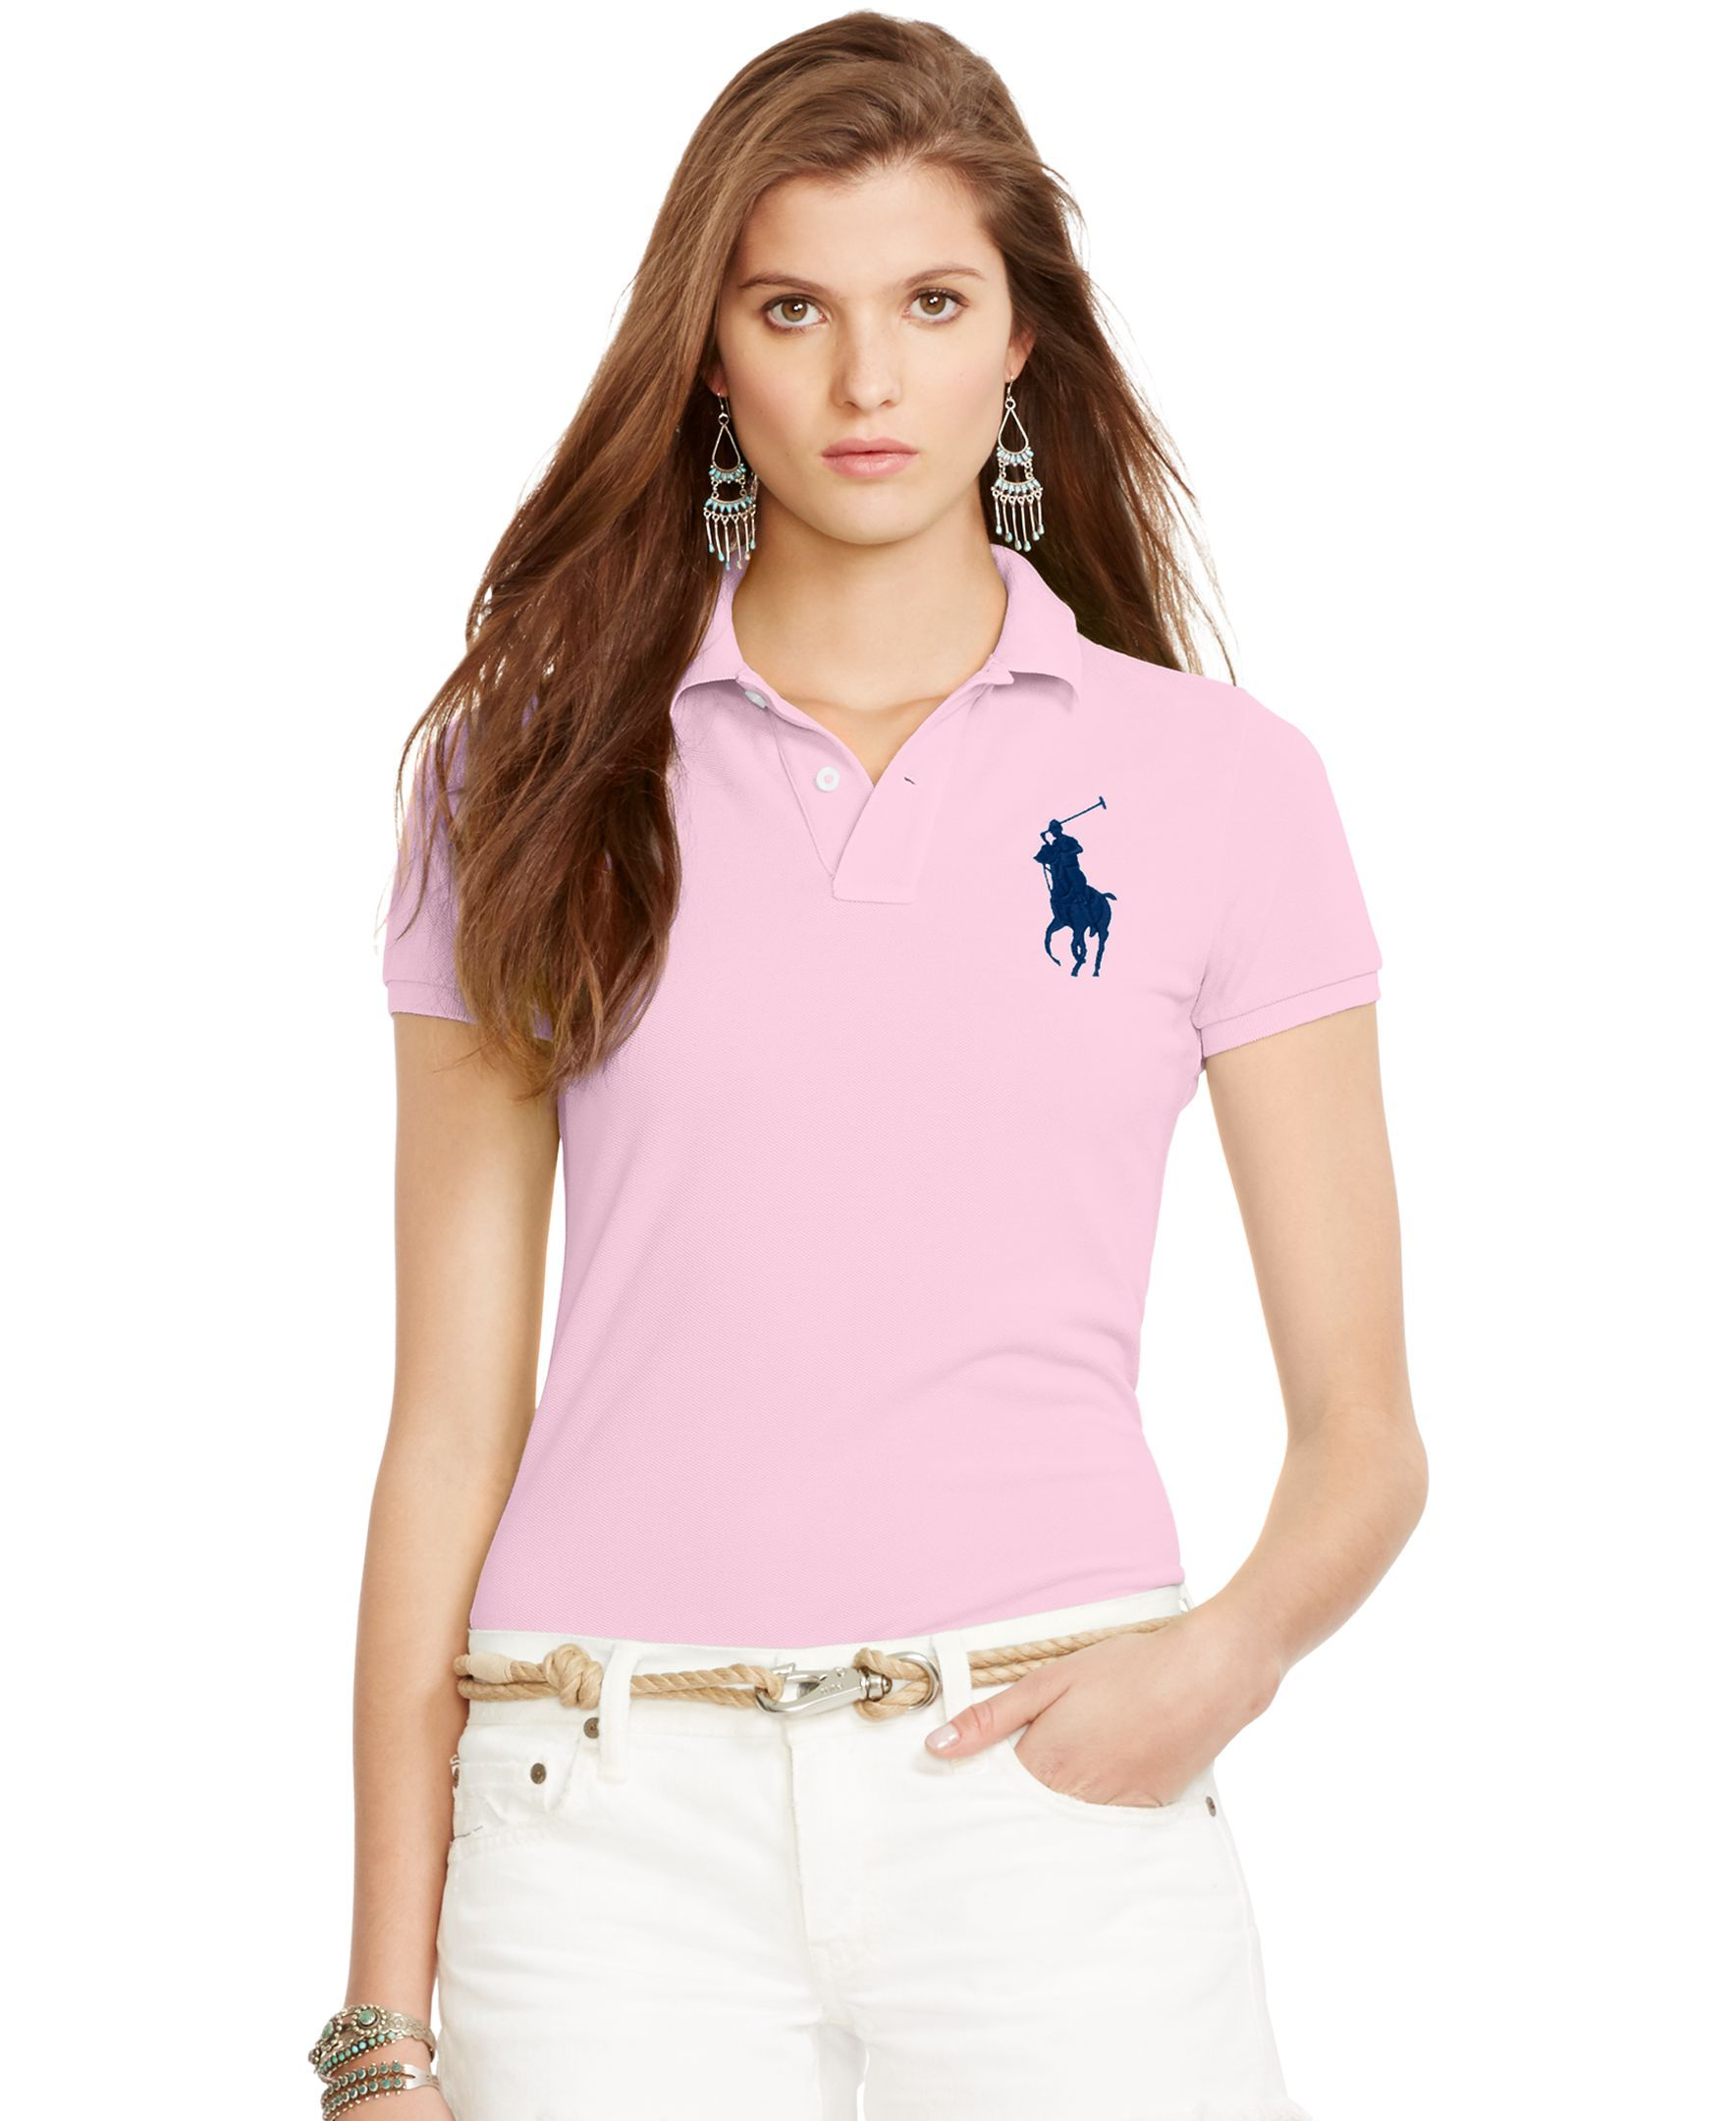 Polo Ralph Lauren Skinny-Fit Big Pony Polo Shirt   Clothes   Ralph ... 91b538cc67